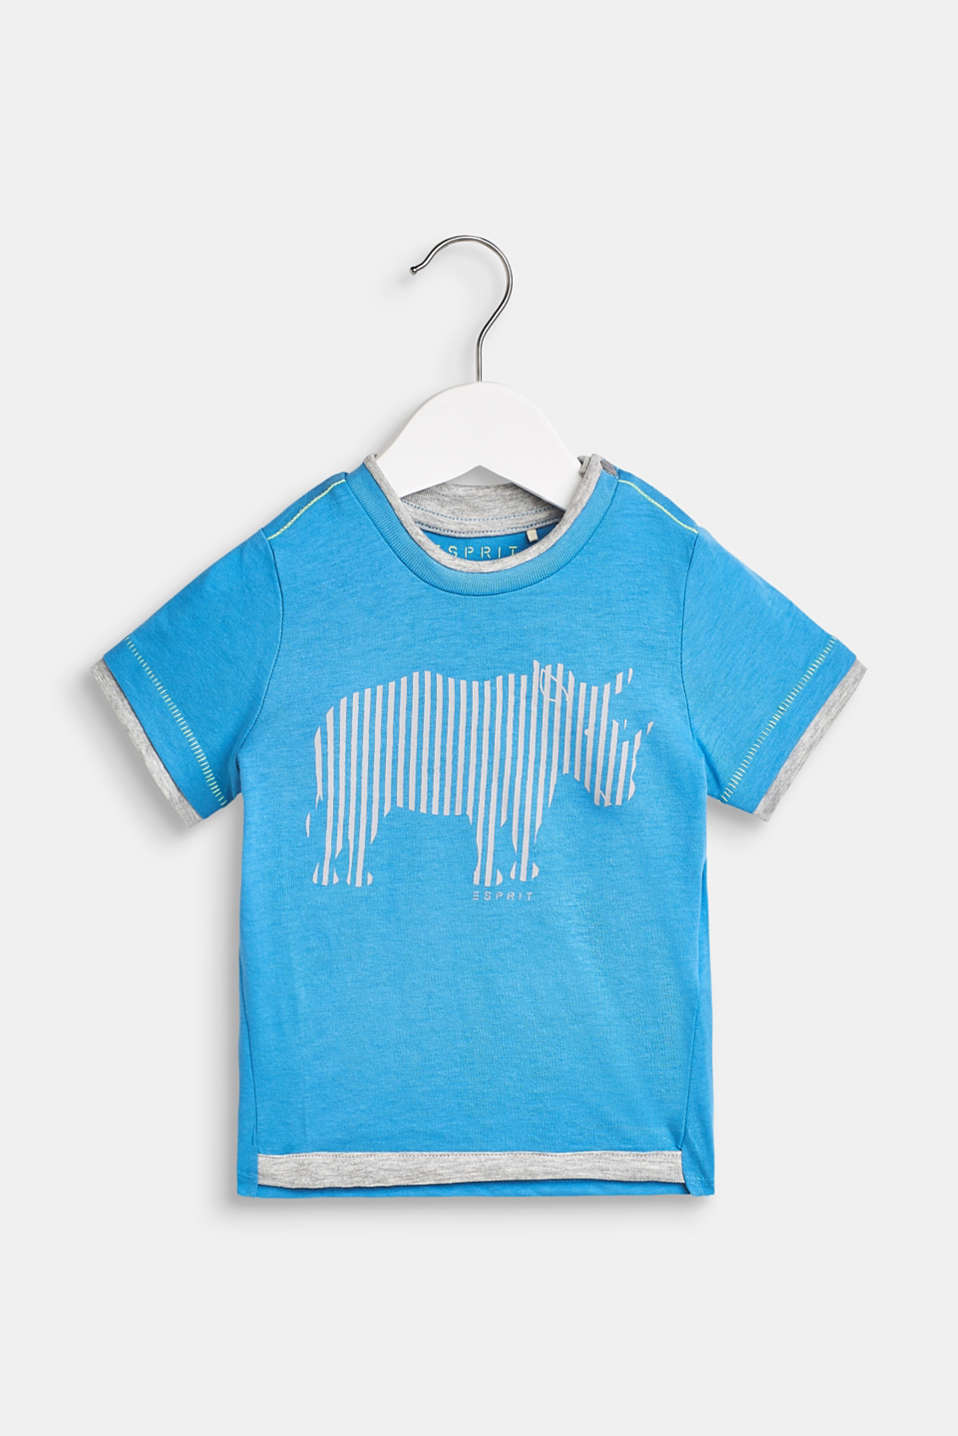 Esprit - T-shirt with rhino print, 100% cotton